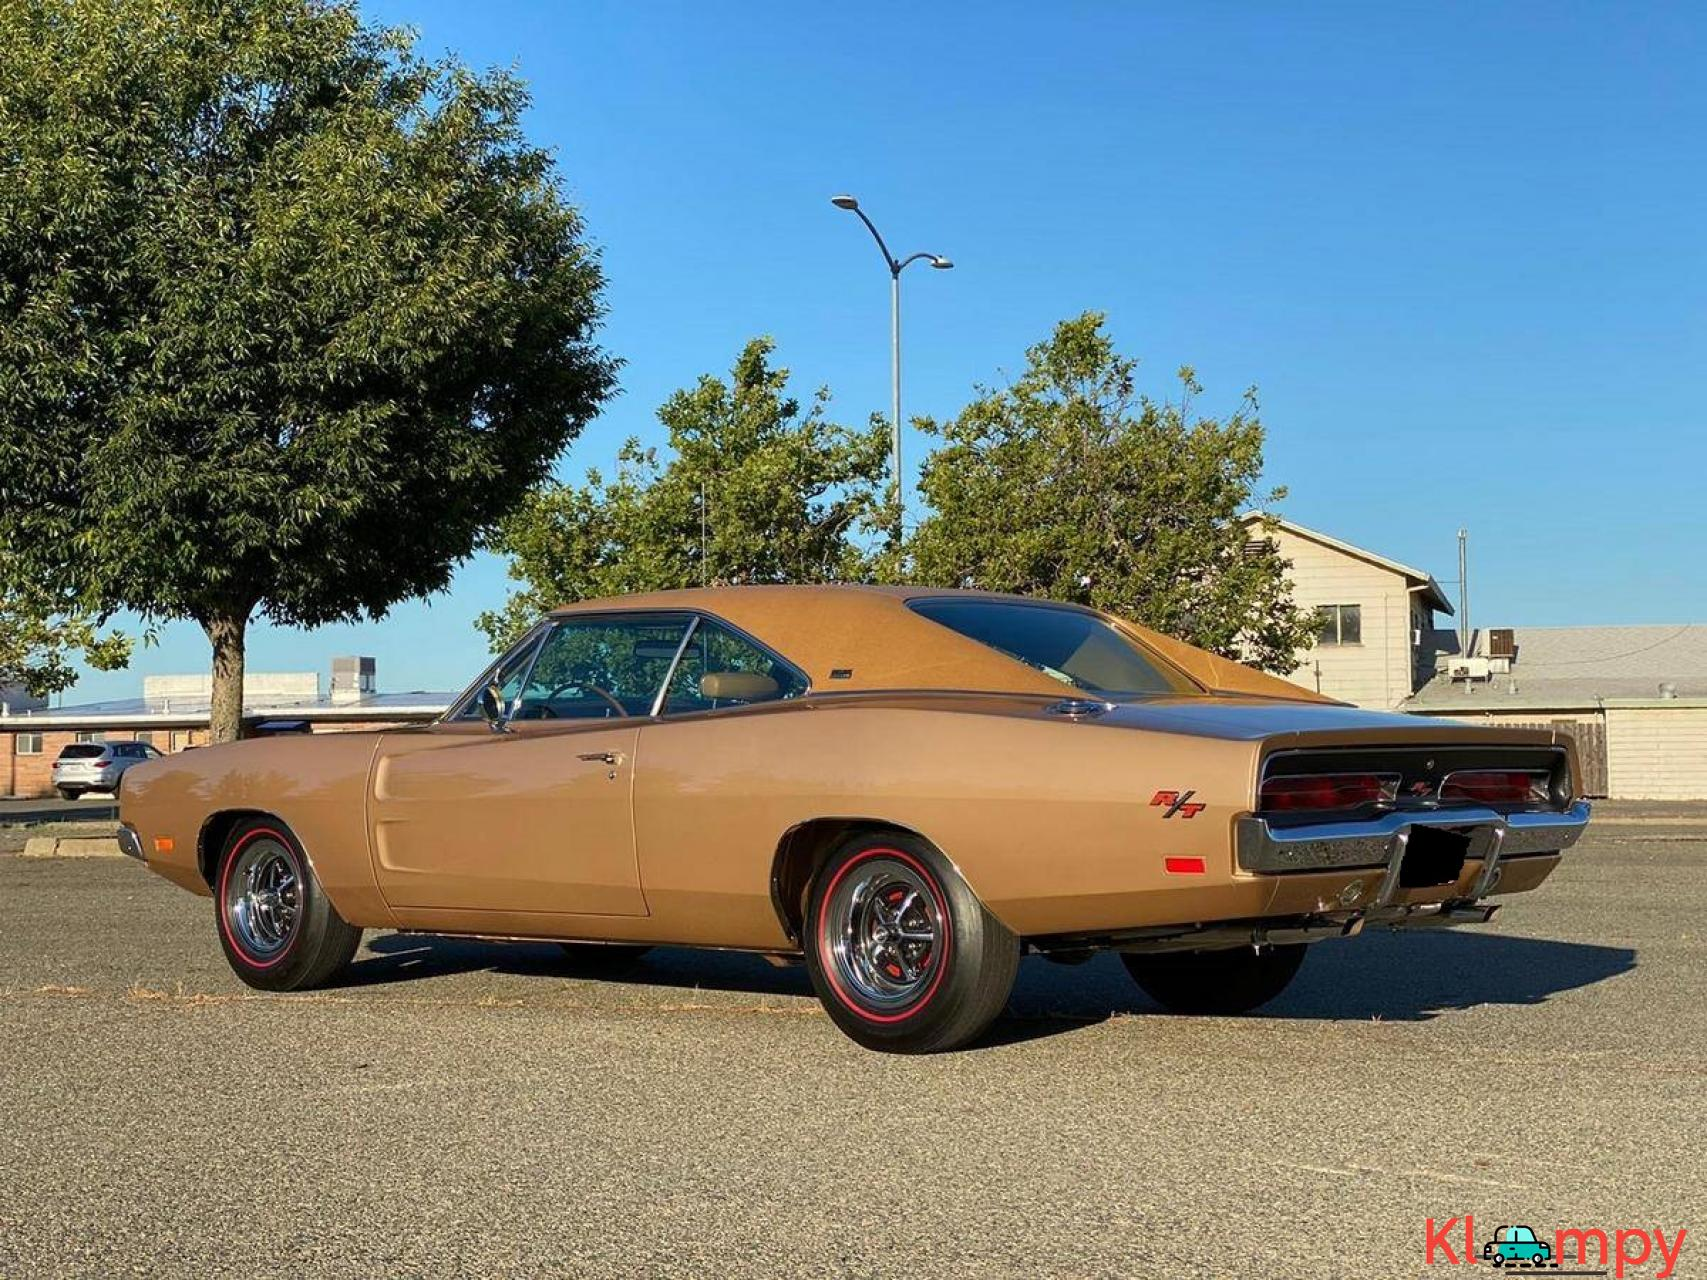 1969 Dodge Charger RT SE 440 375hp High Performance - 14/20